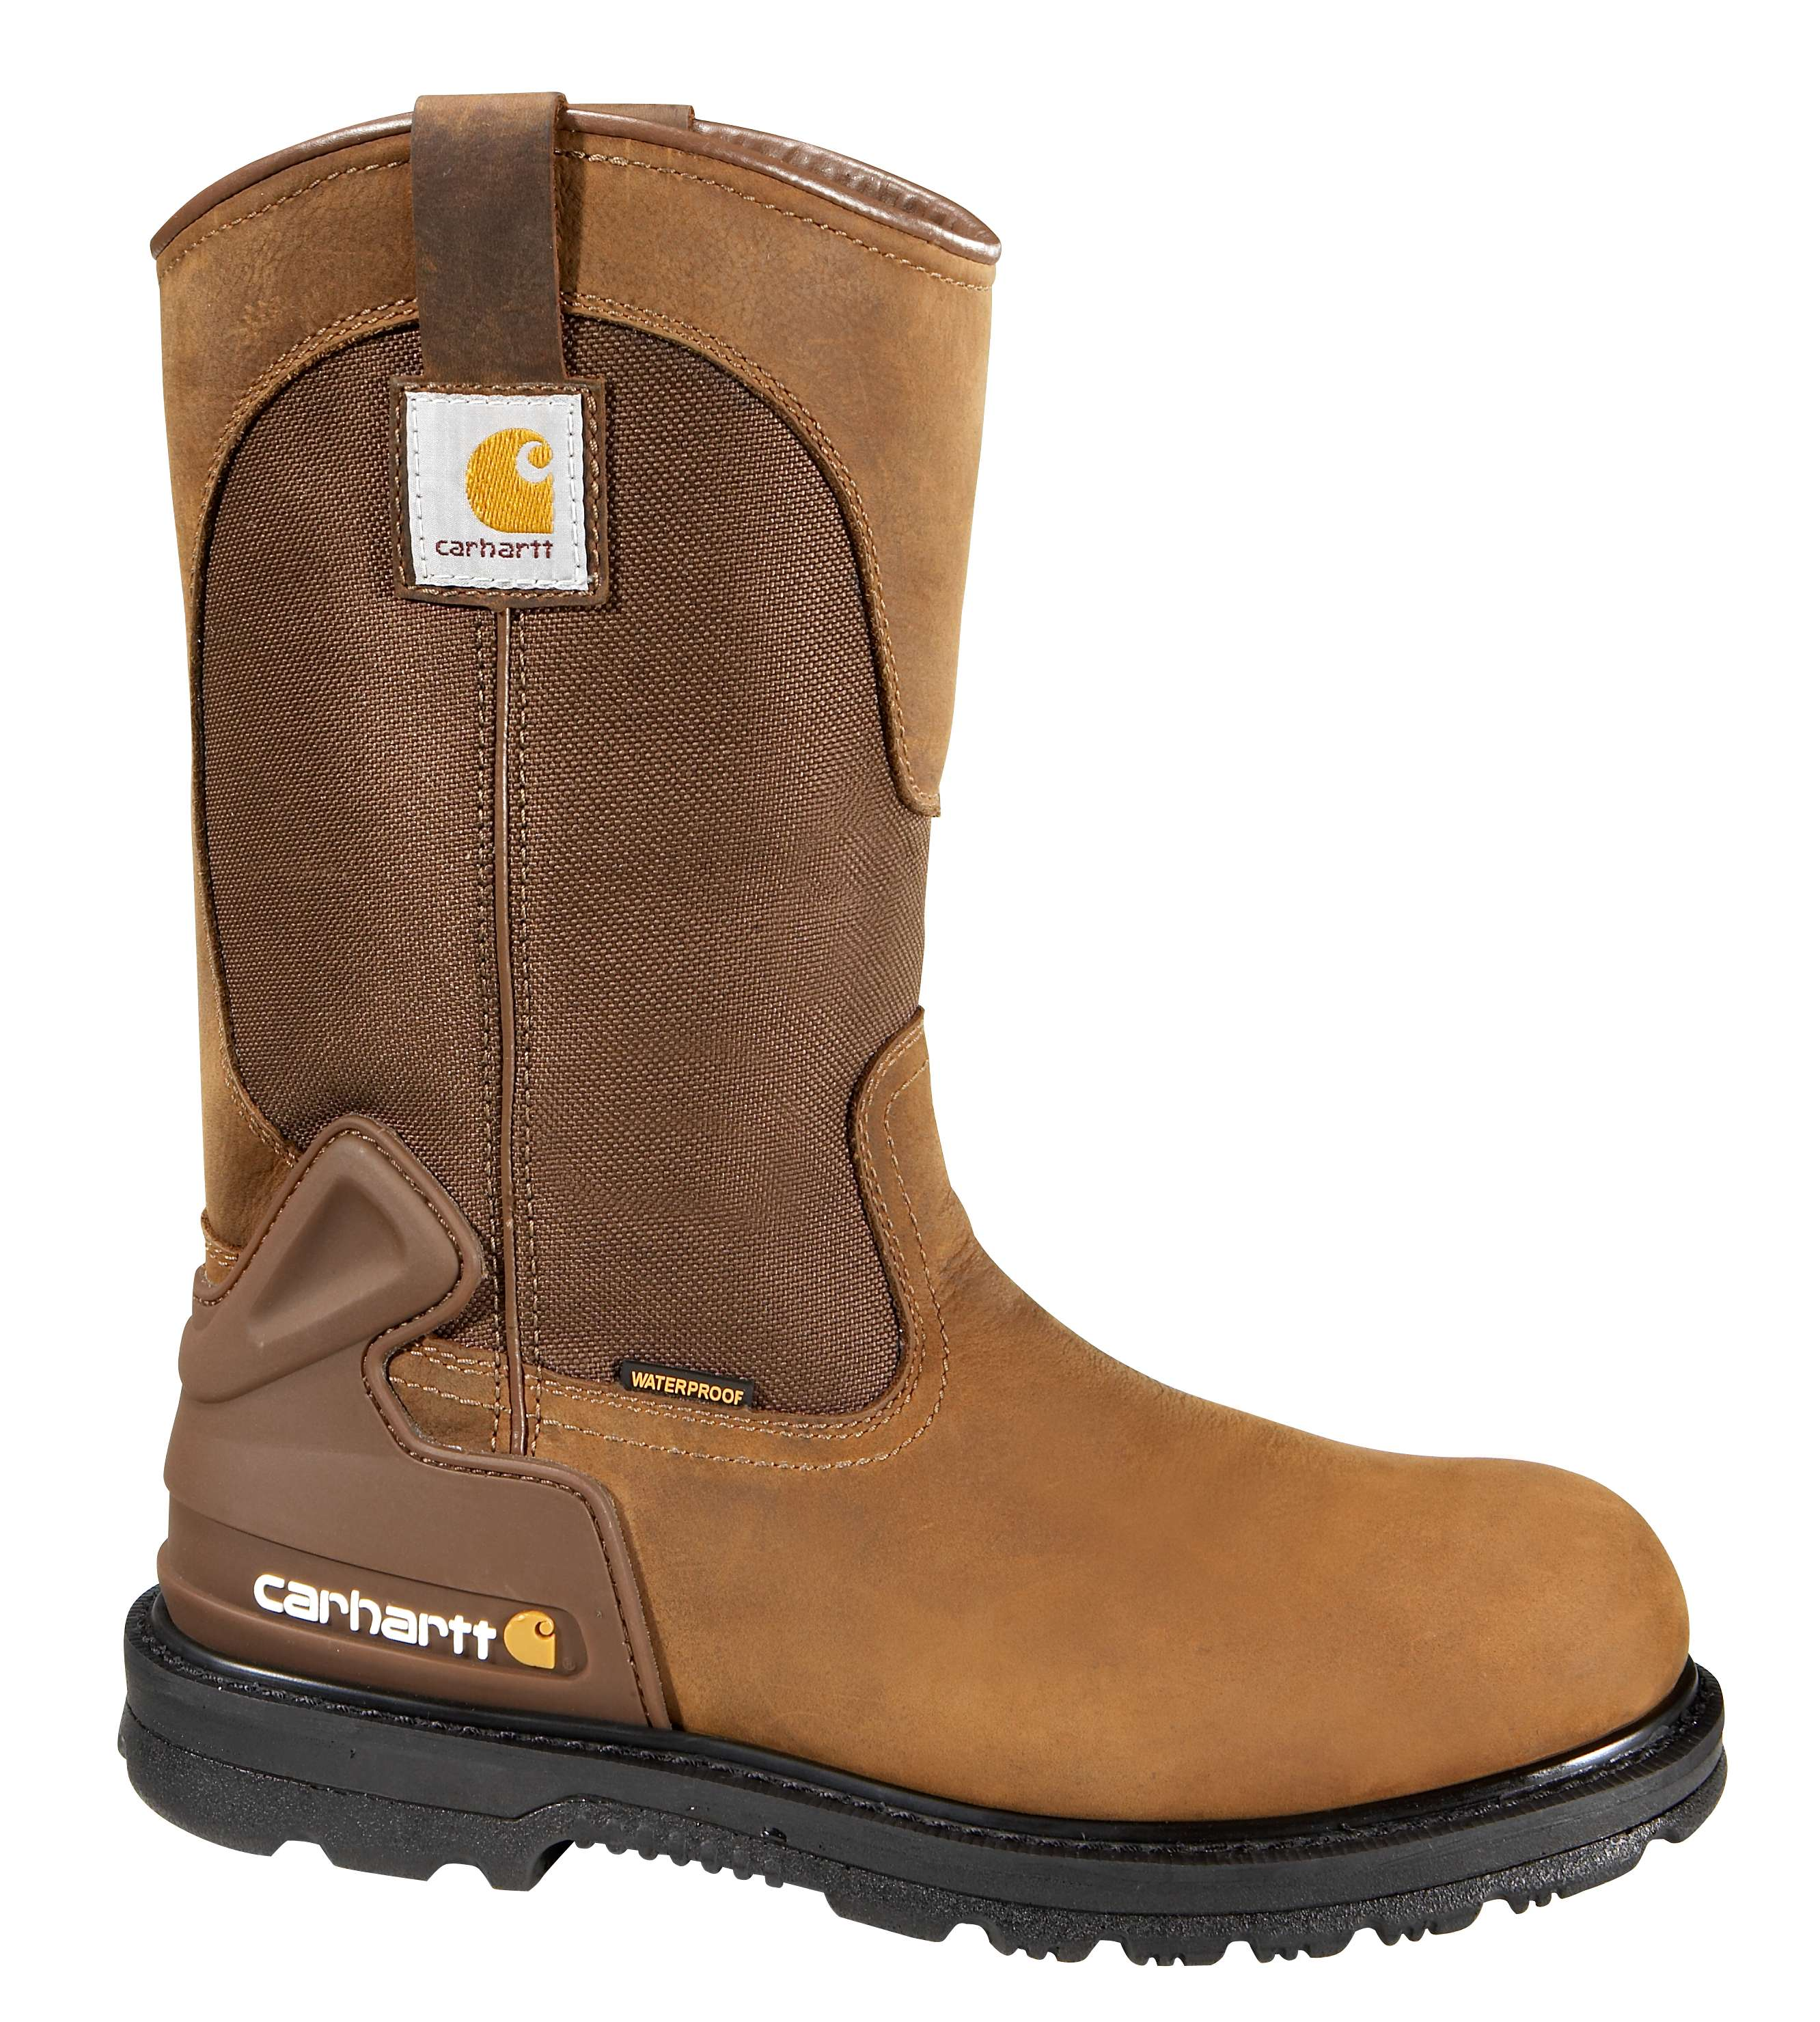 Carhartt 11 inch Bison Brown Safety Toe Wellington